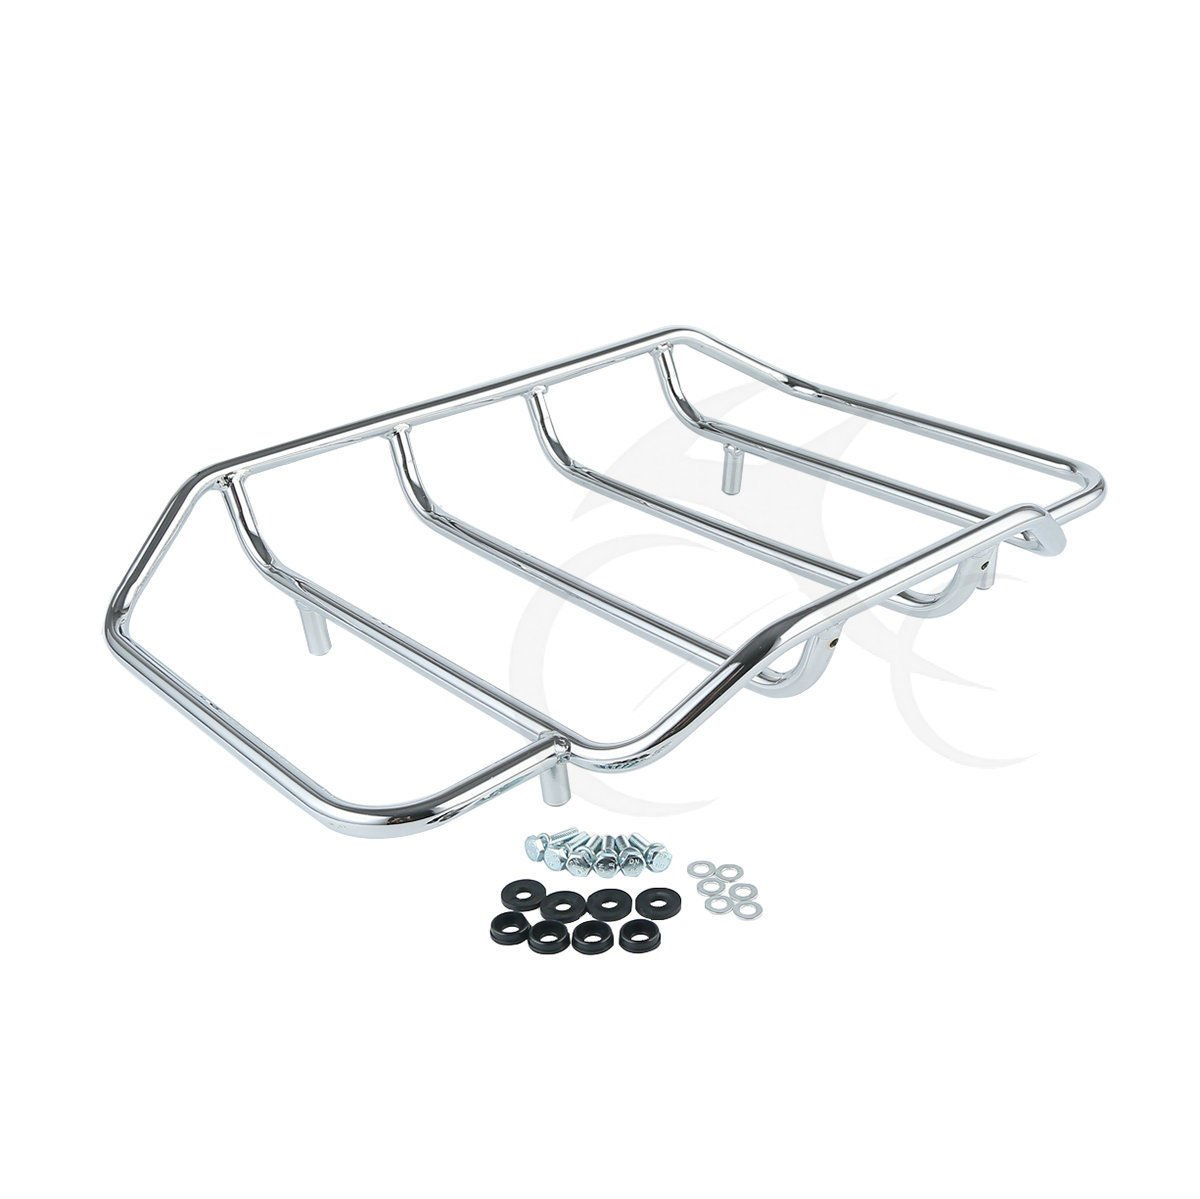 TCMT Trunk Luggage Rack Rail for Harley Touring Road King Street Glide Road Glide 1984-2018